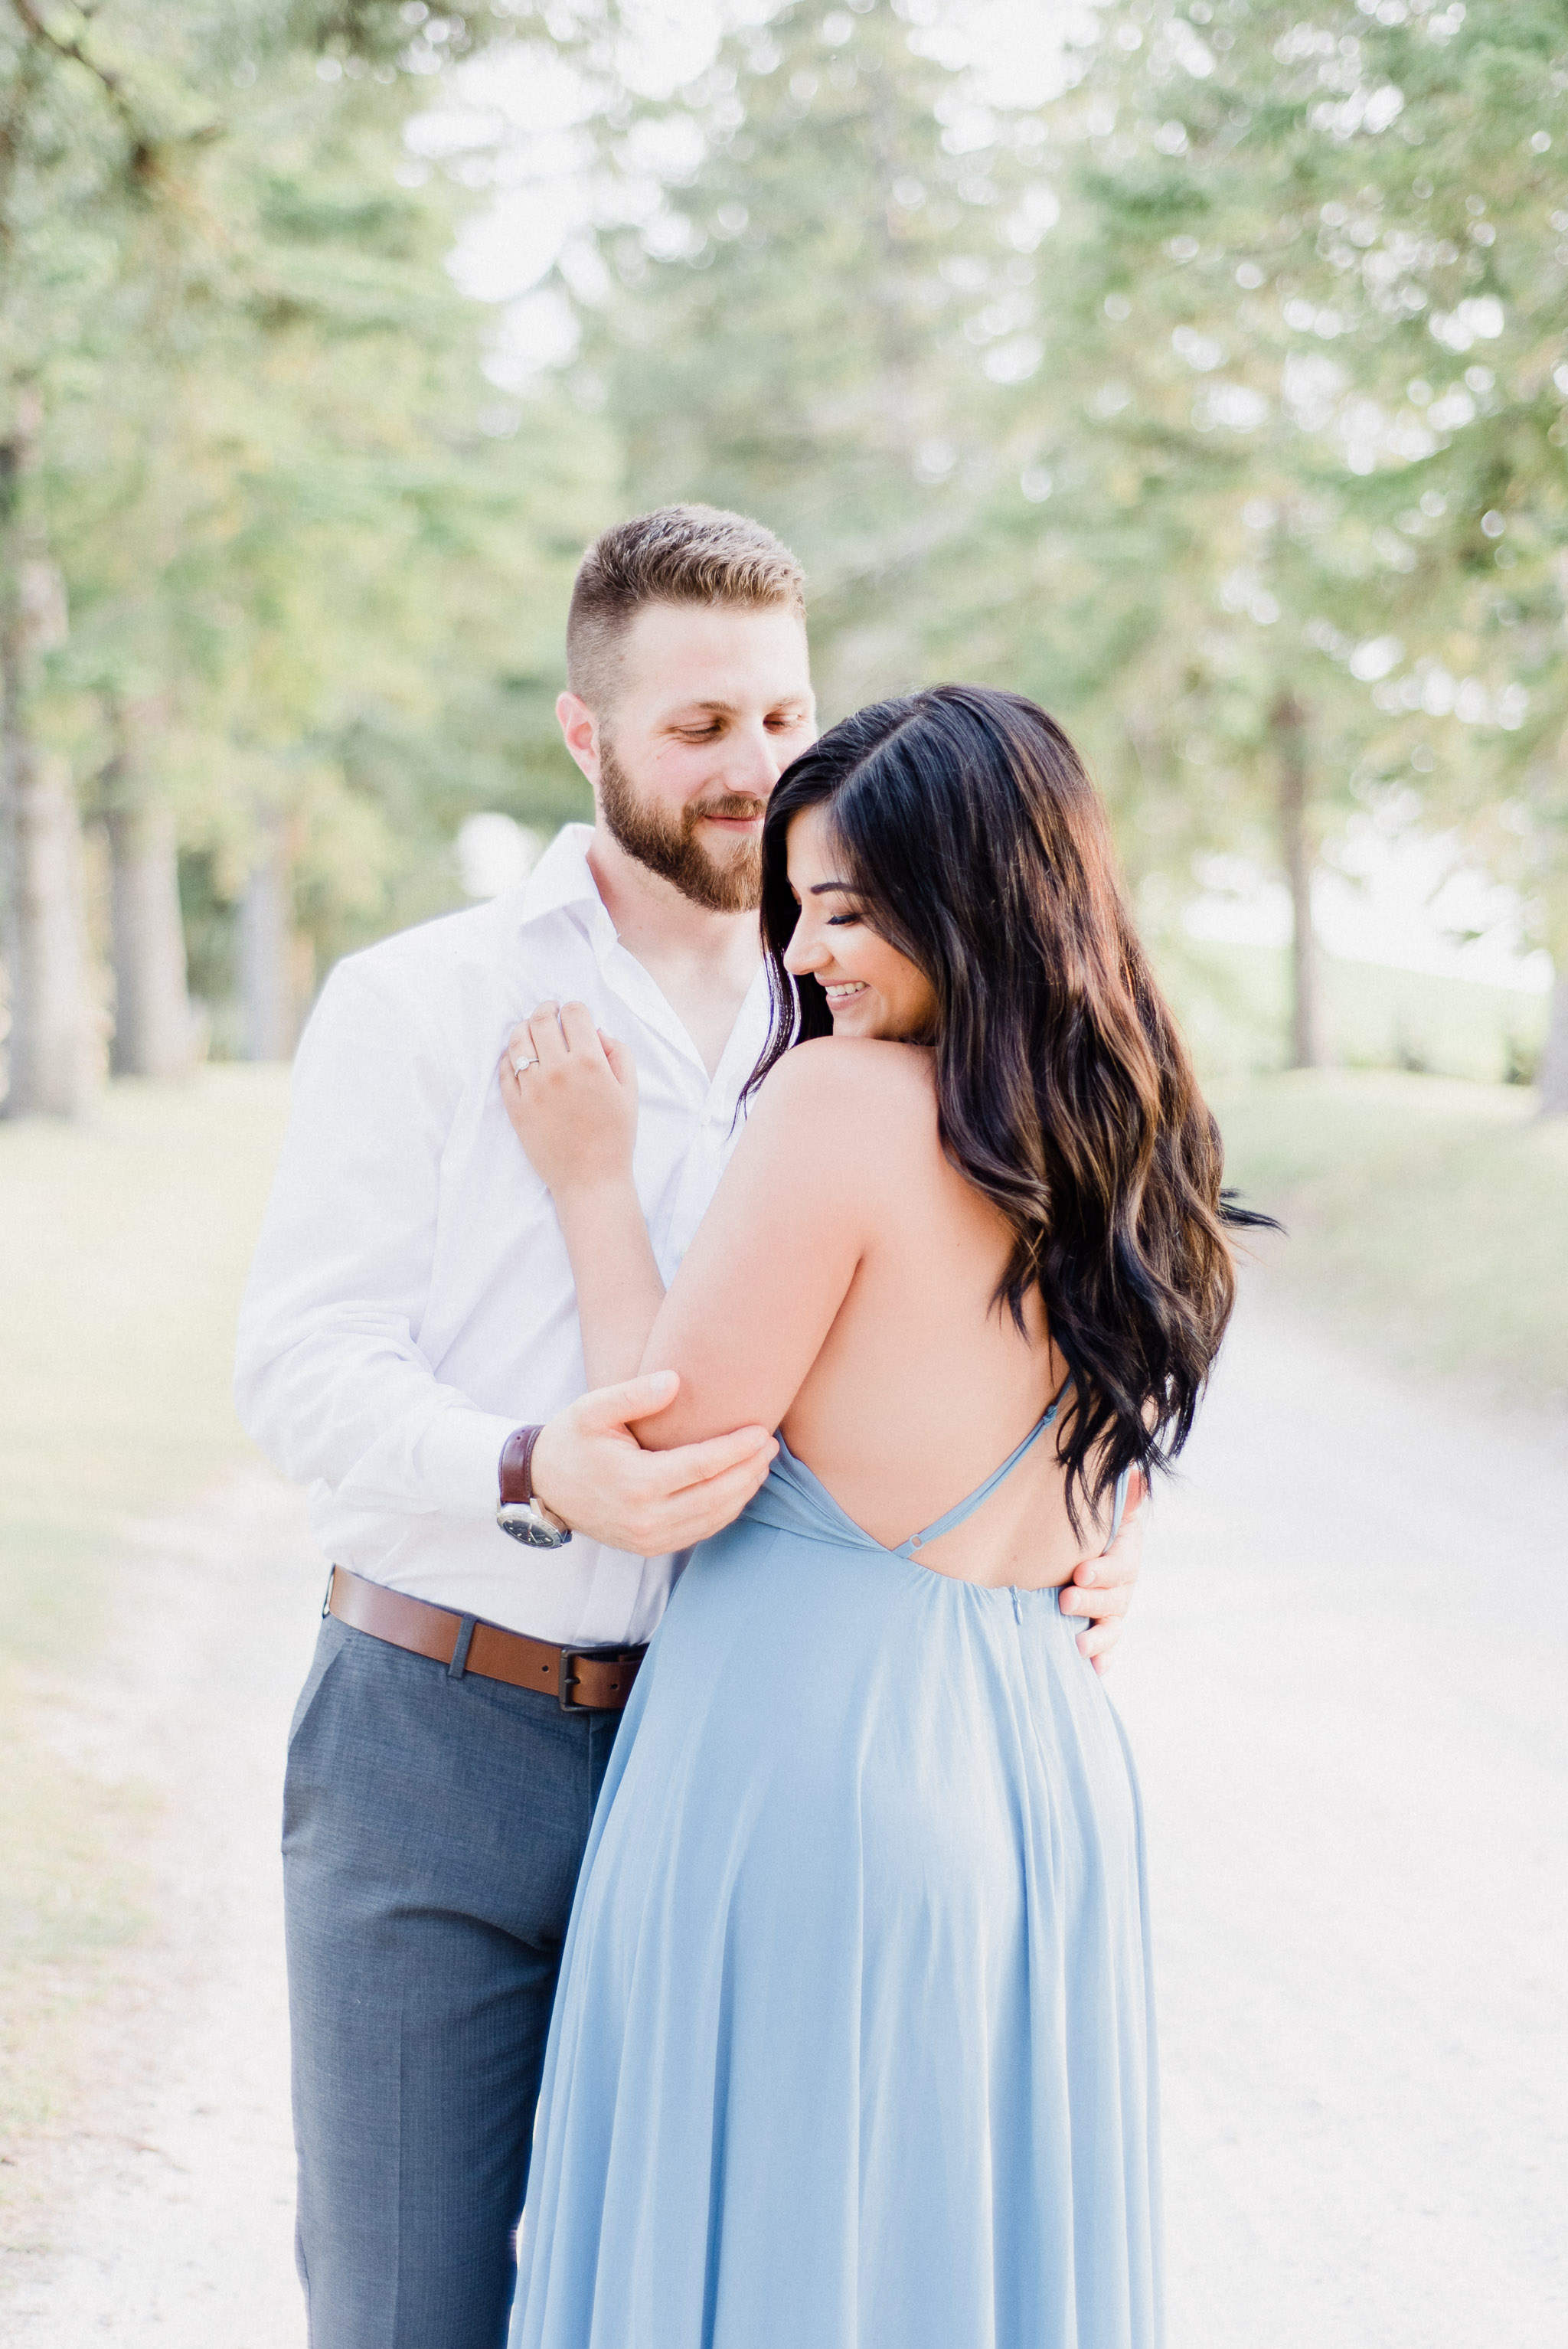 Gorgeous bride-to-be in Lulus Mythical Kind of Love Slate Blue Maxi Dress